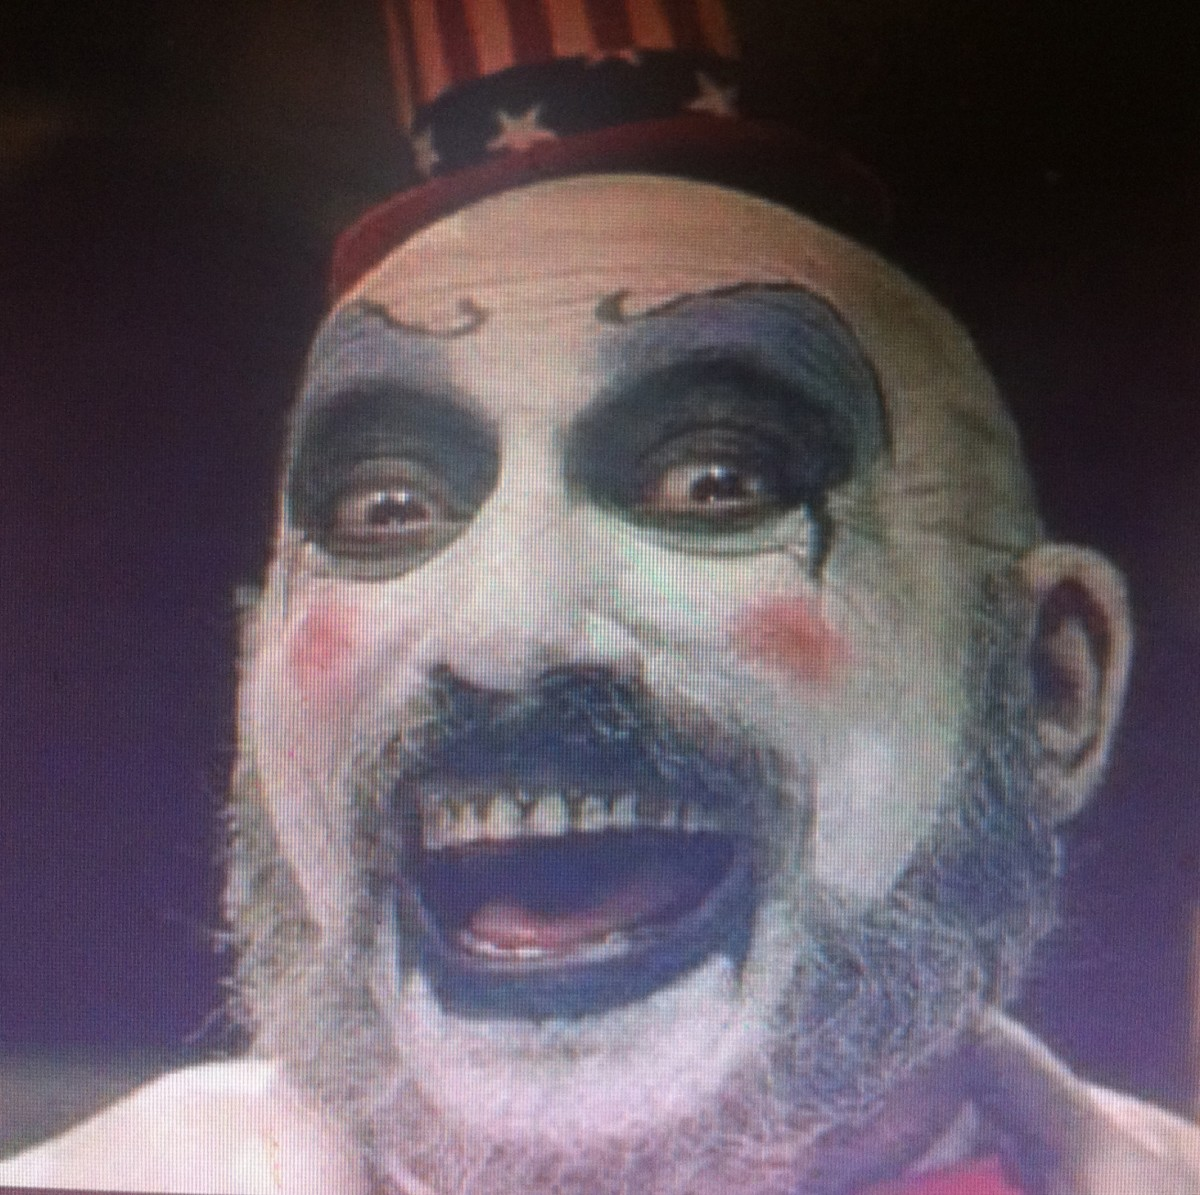 clowns-the-not-so-funny-jesters-of-horror